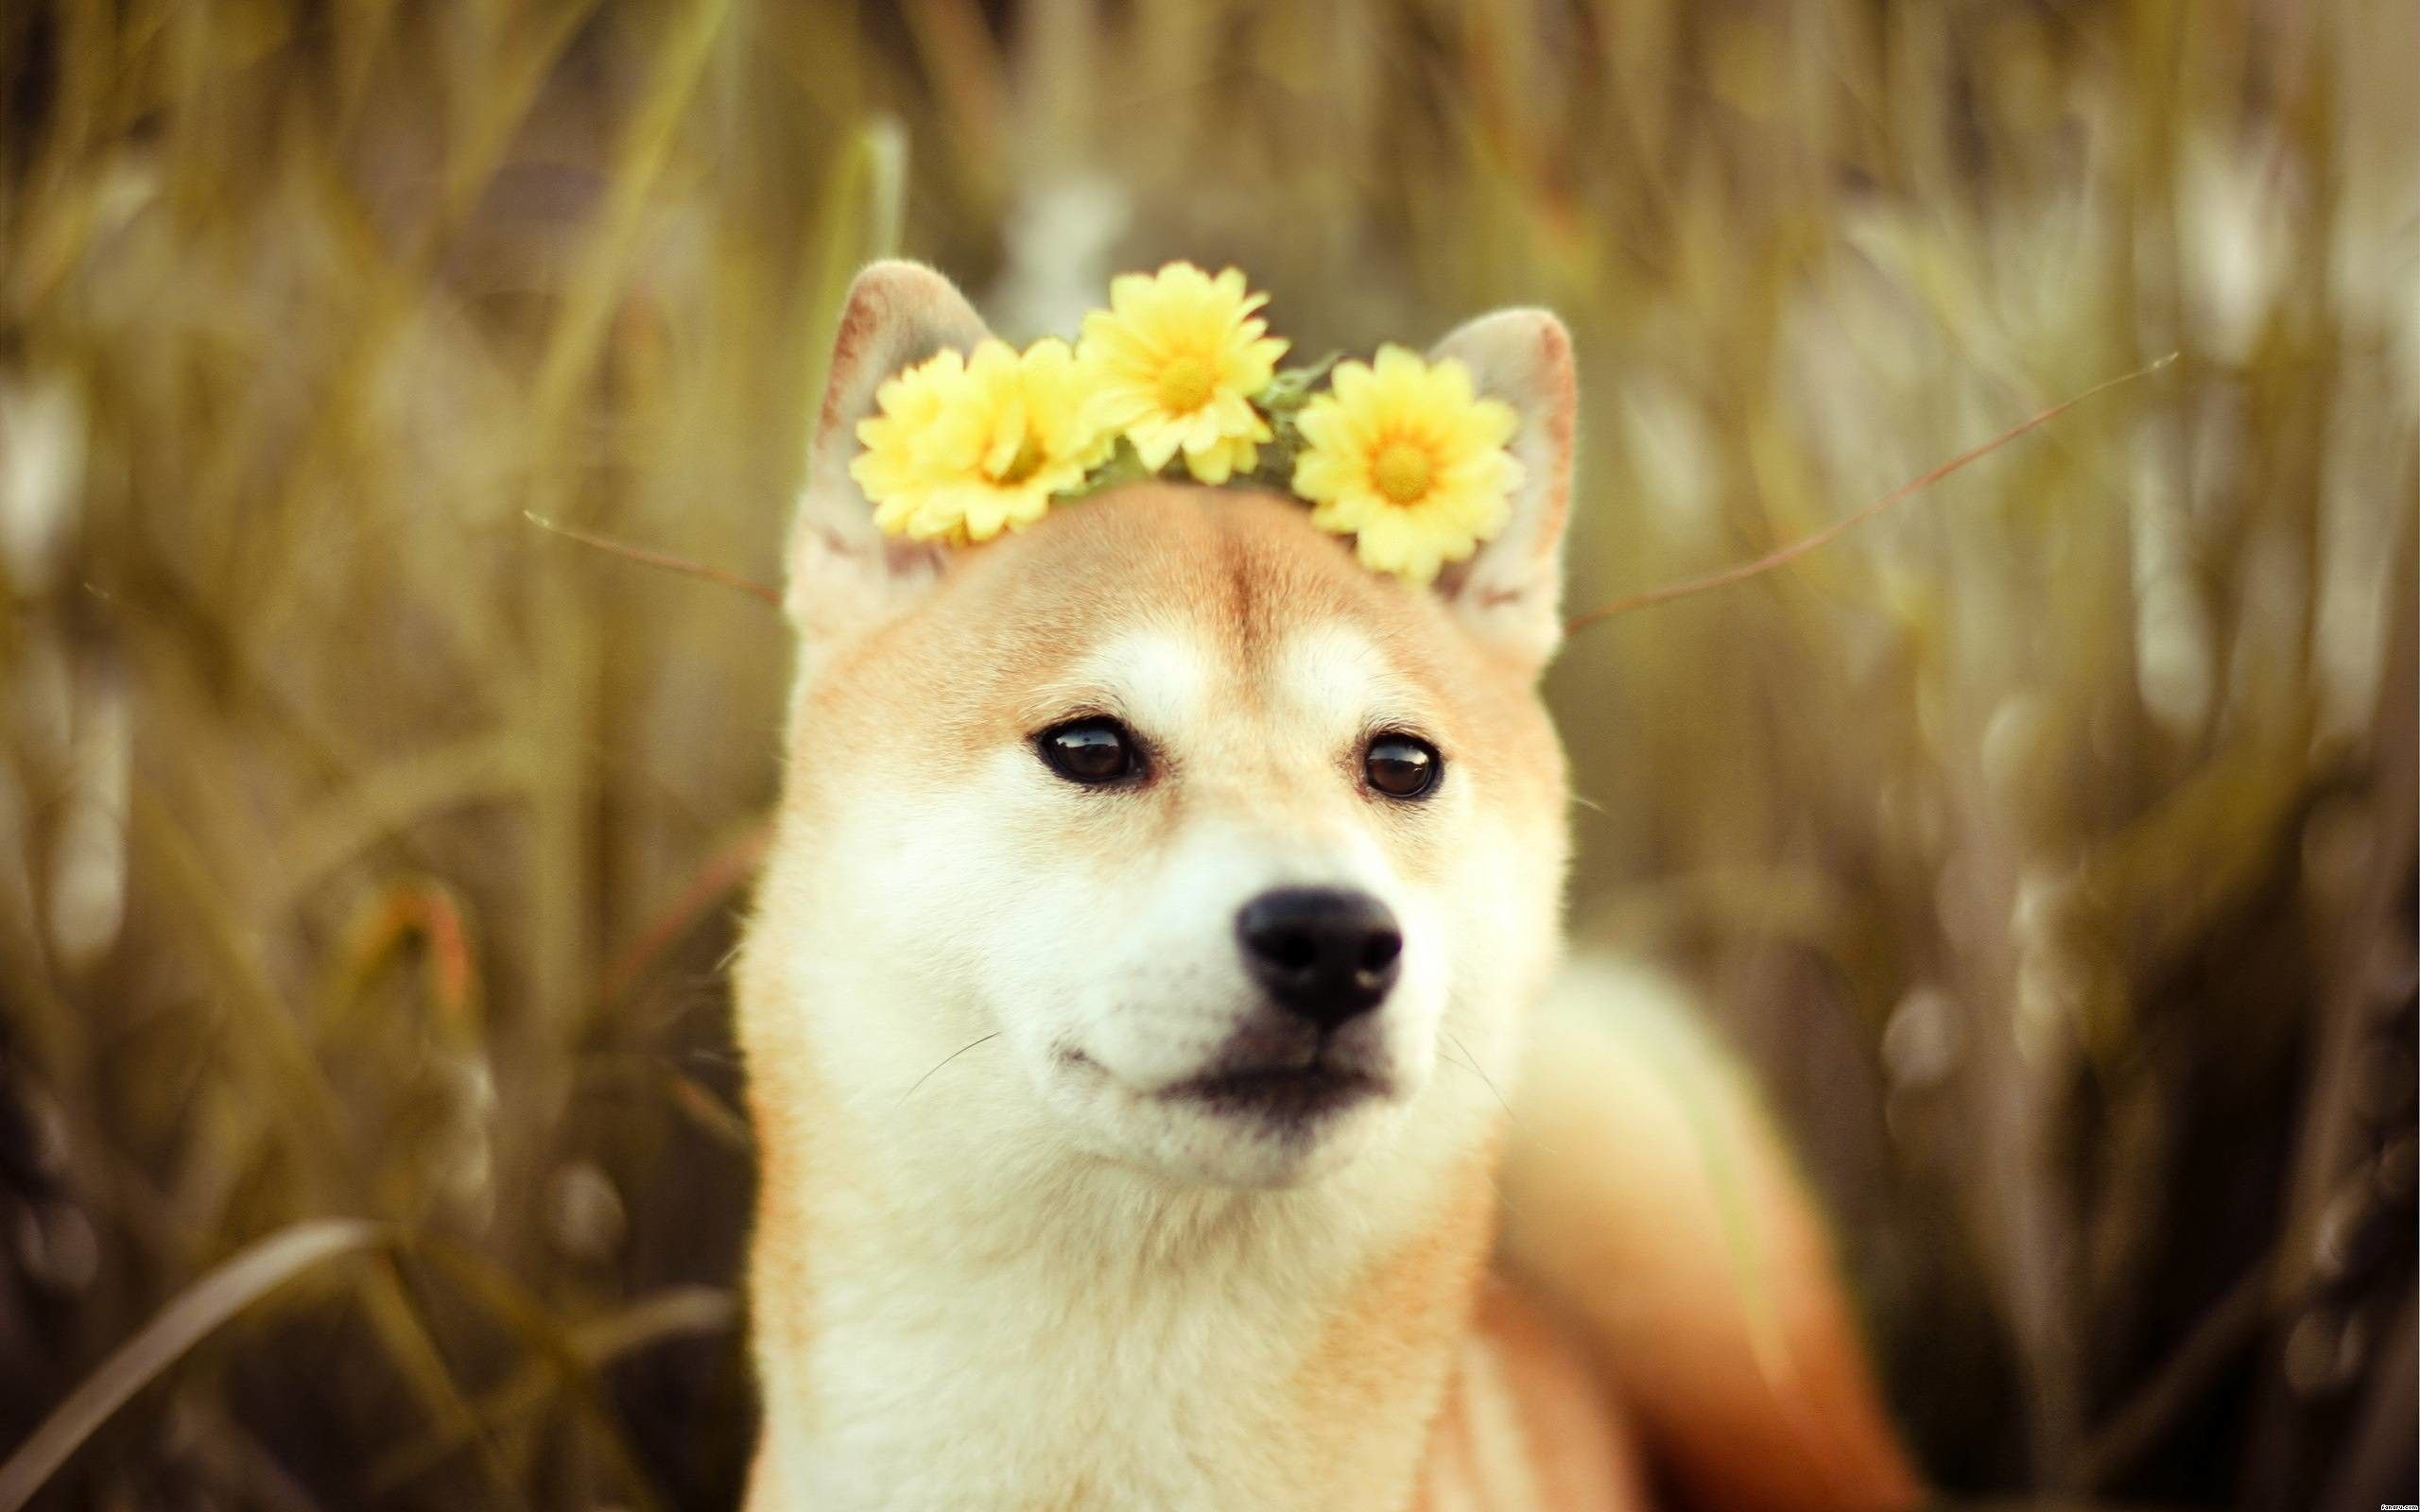 76 Doge Meme Wallpapers on WallpaperPlay Cute dog